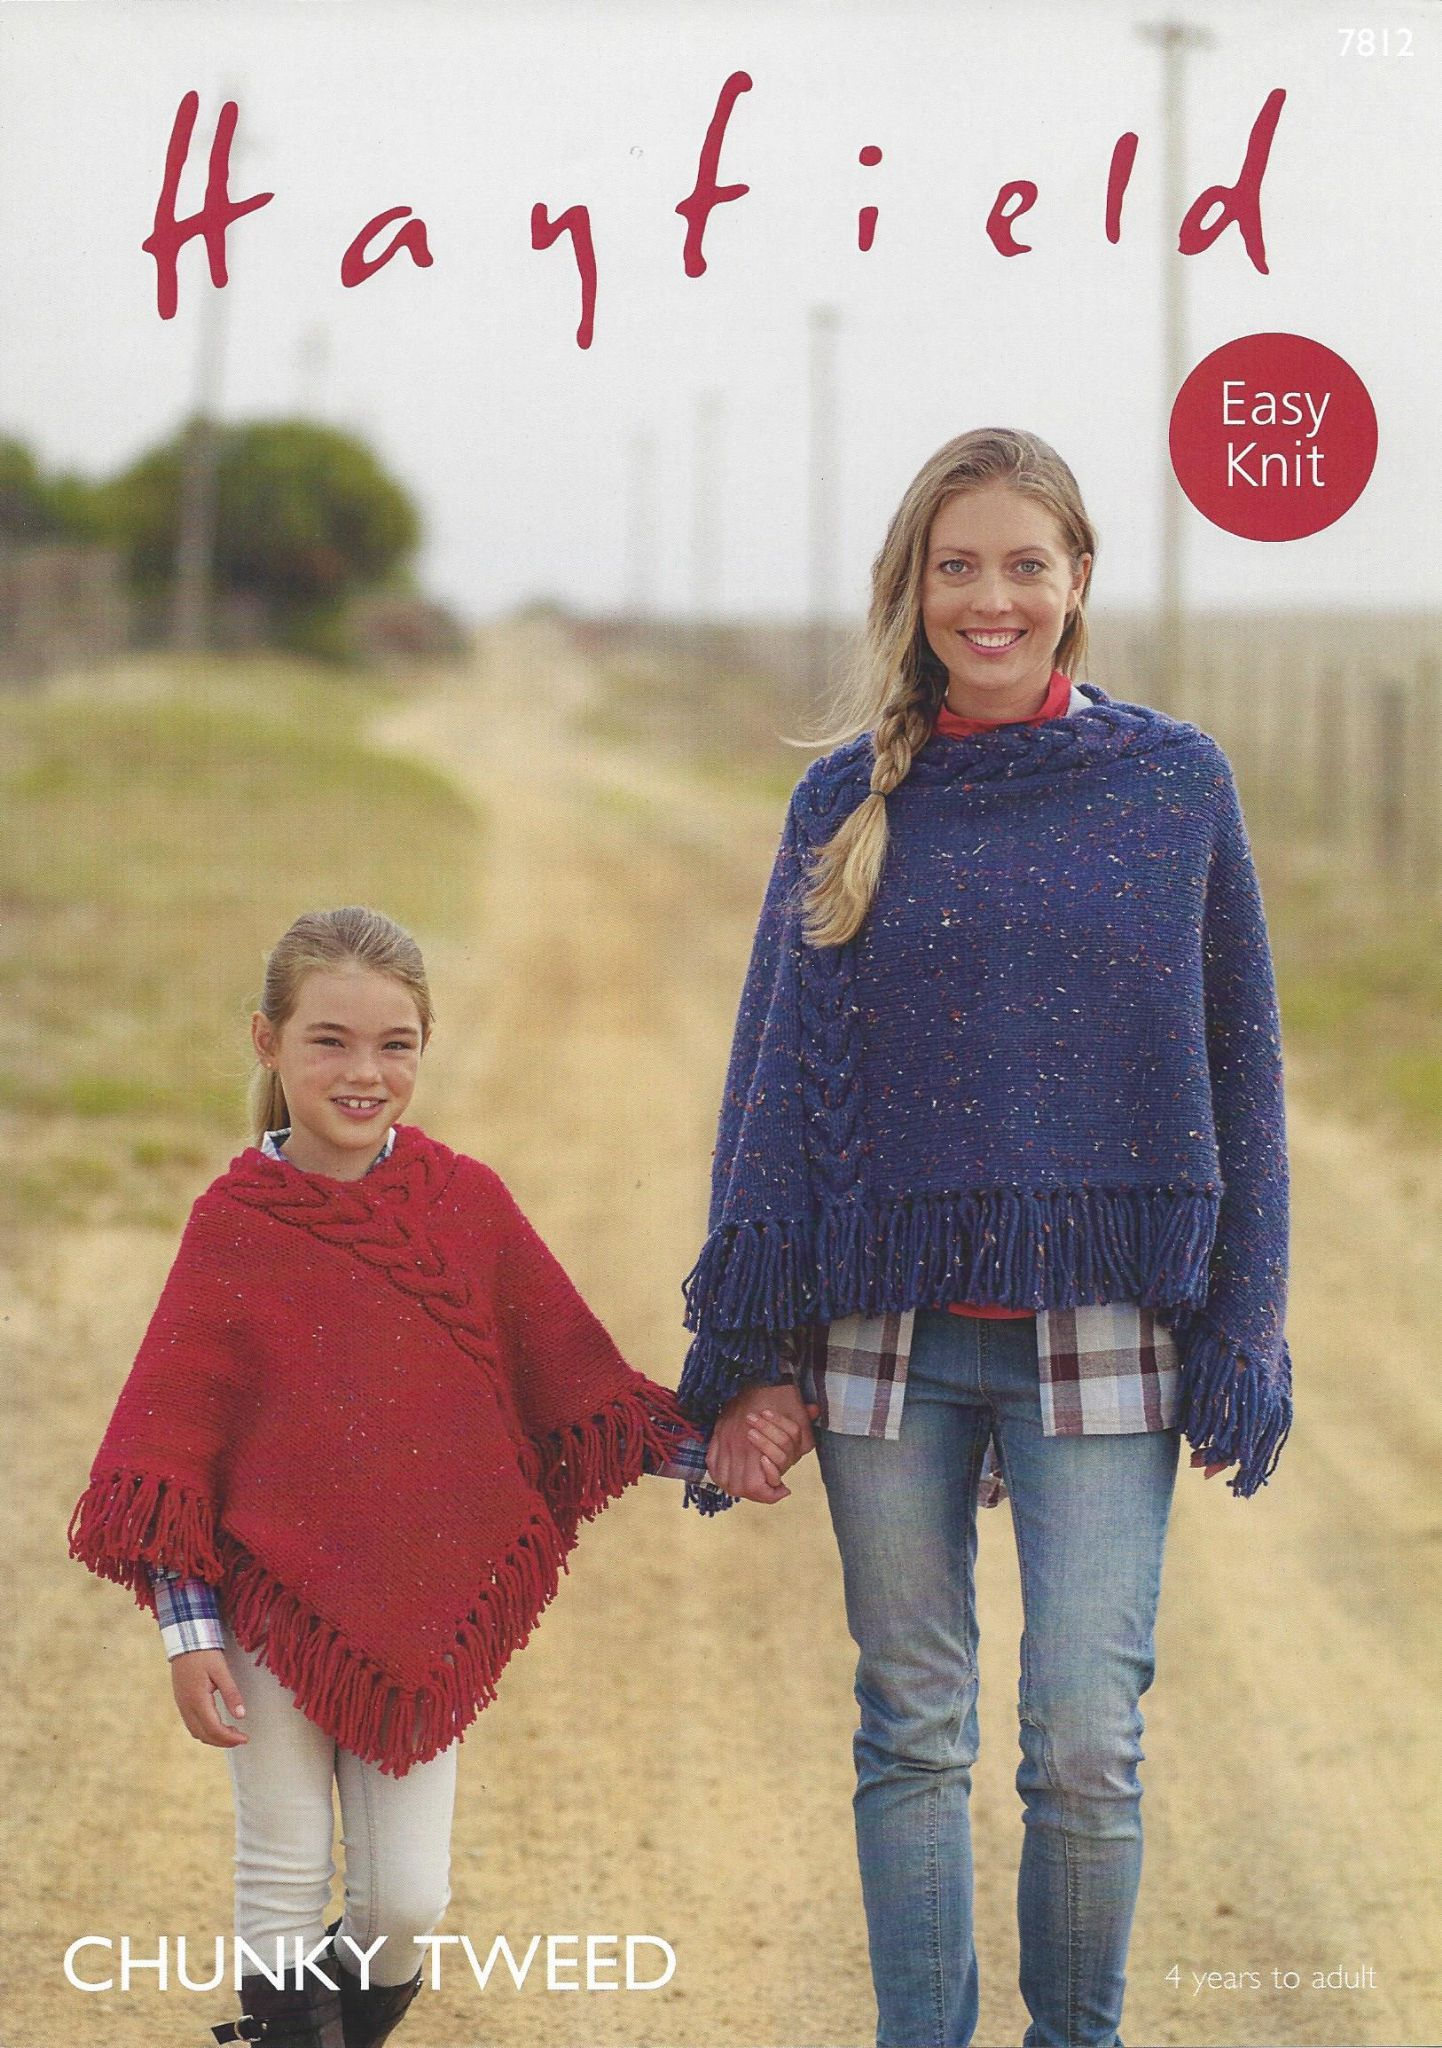 Poncho Knitting Pattern Chunky 7812 Hayfield Chunky Tweed Easy Knit Poncho Knitting Pattern 4 Yrs To Adult